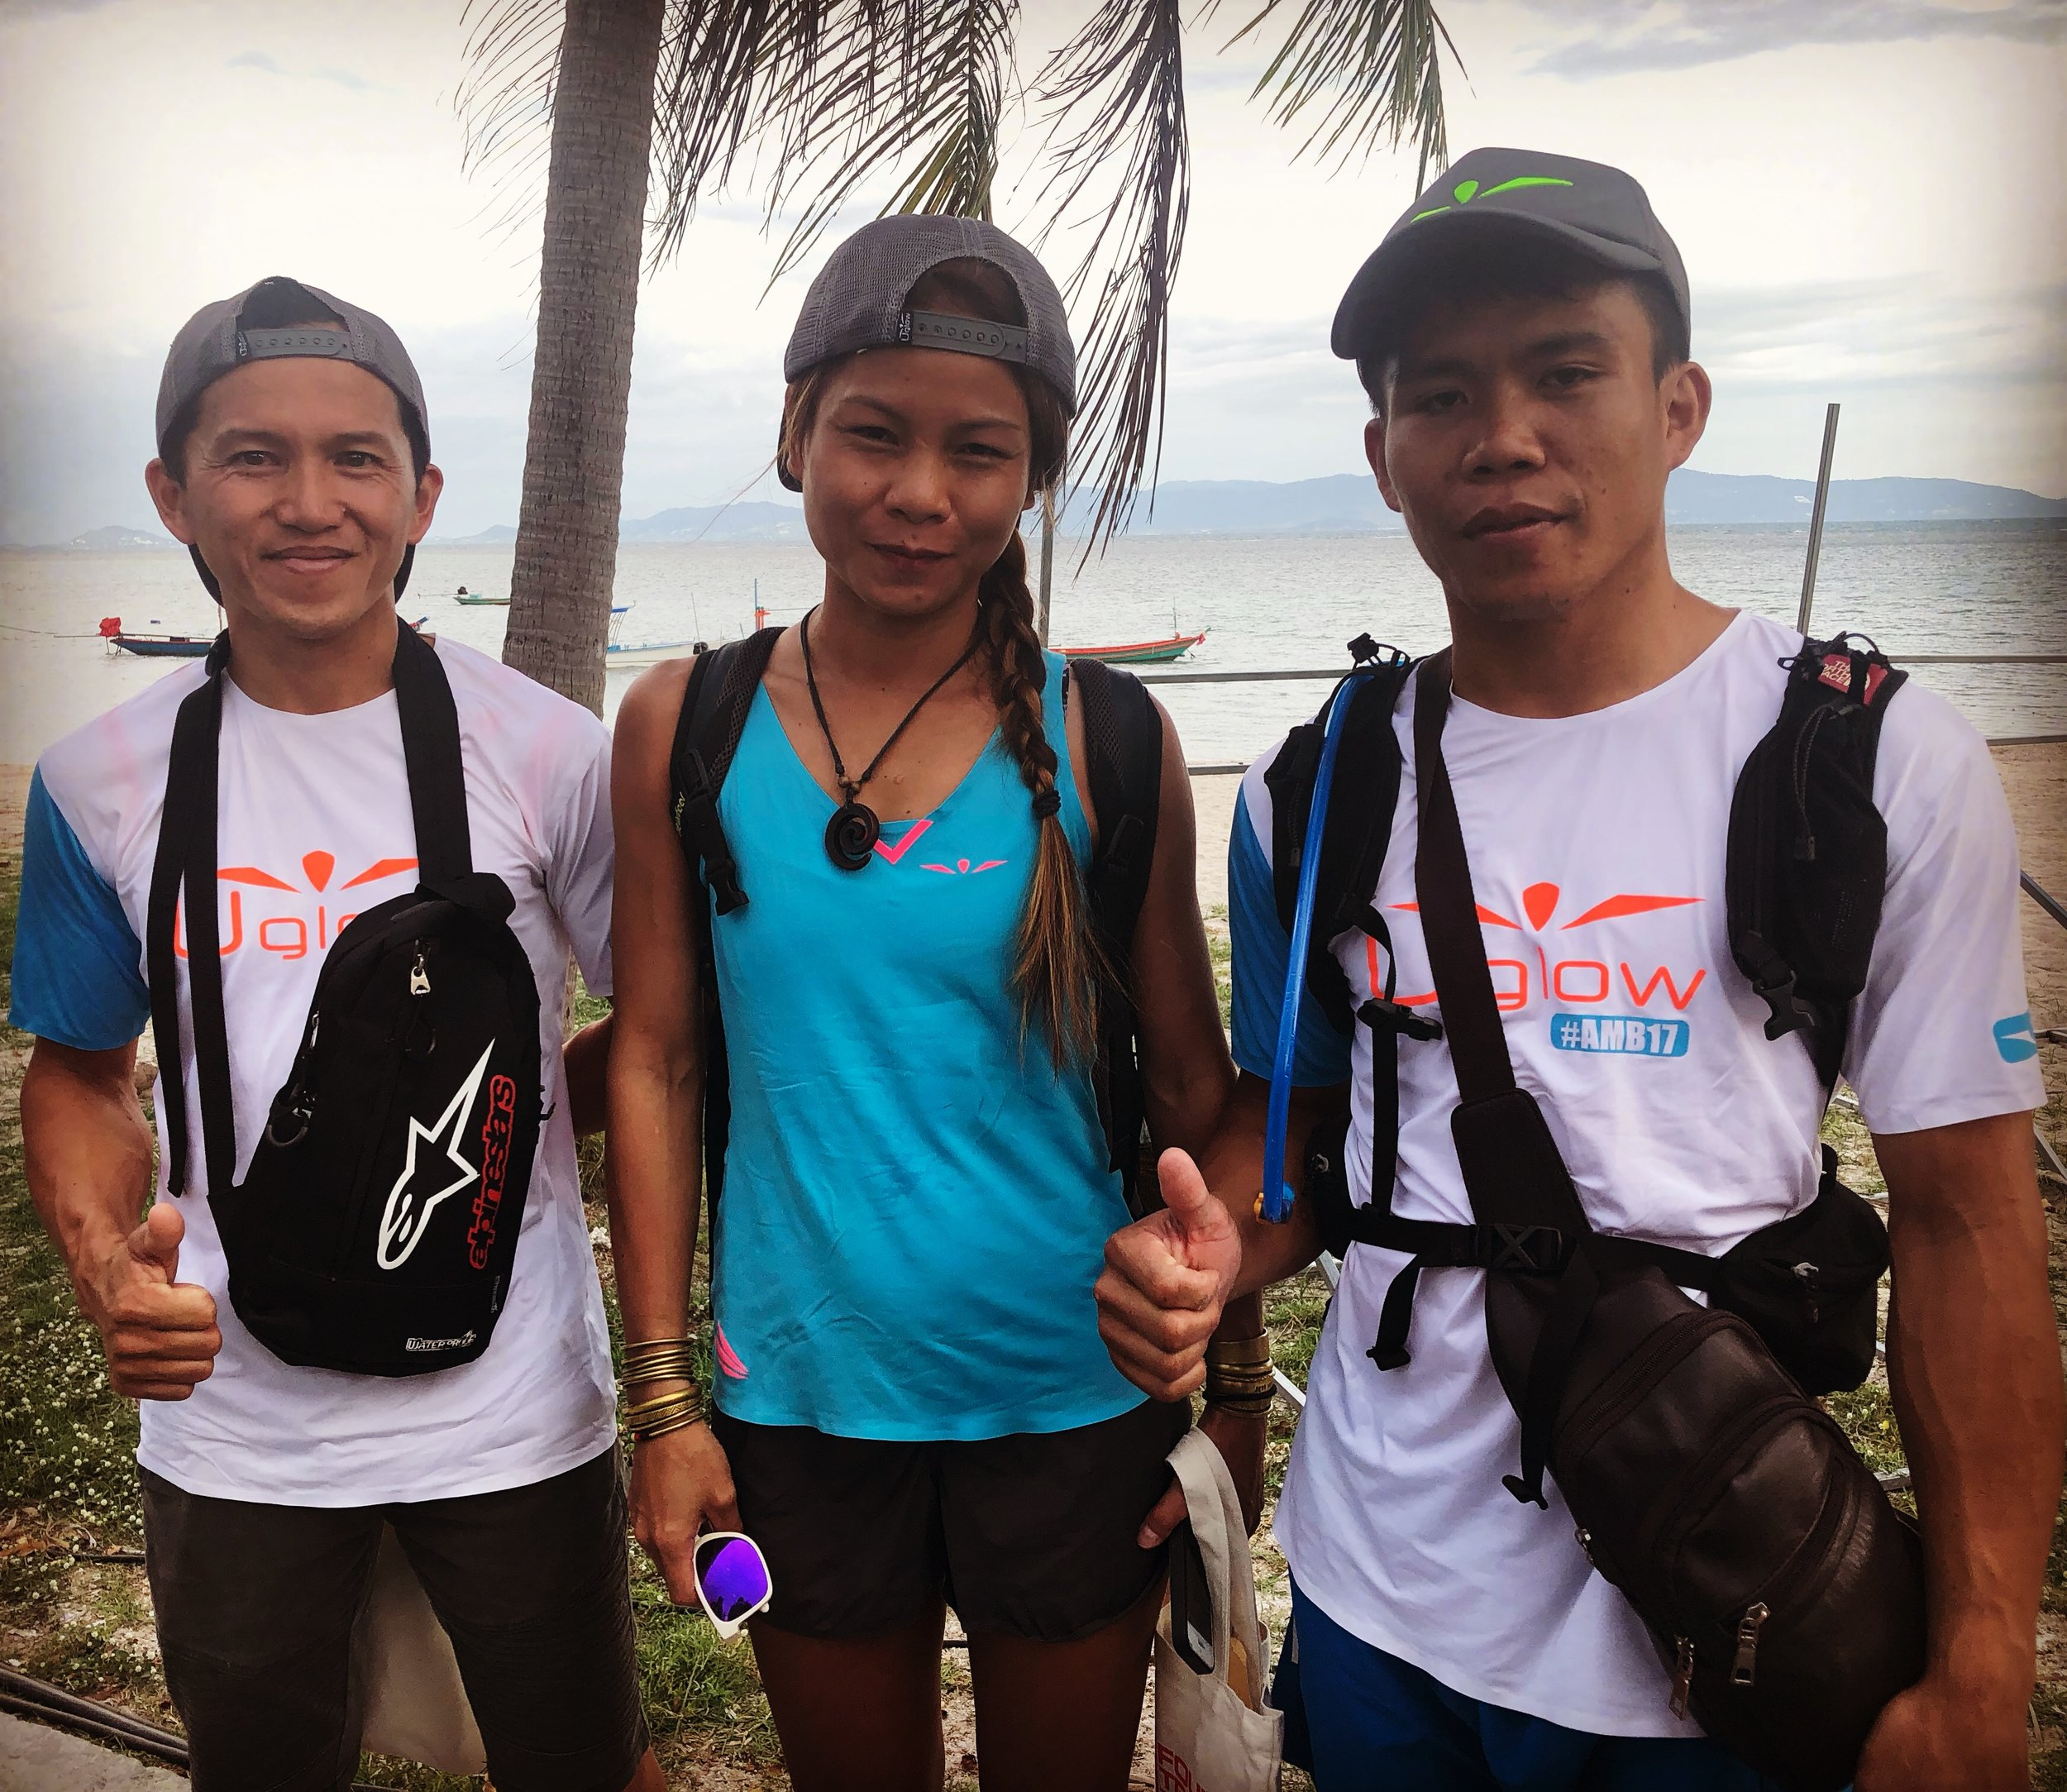 Milton, Jess and Wilsen: the three Sabahans from Team Uglow Malaysia were omnipresent last weekend